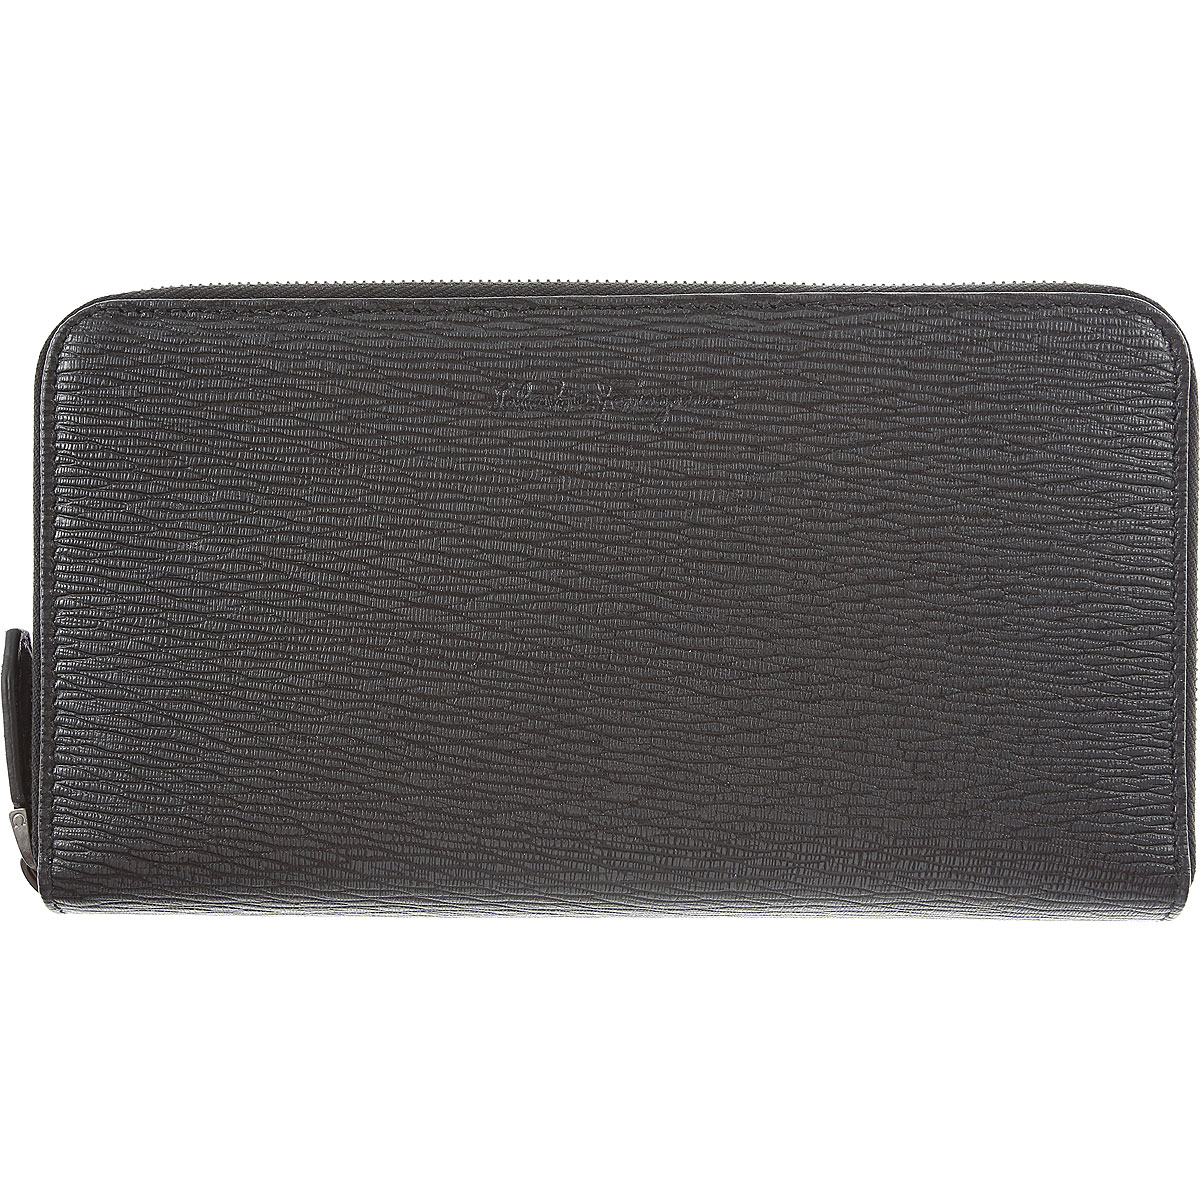 Salvatore Ferragamo Mens Wallets On Sale in Outlet, Grey, Leather, 2019